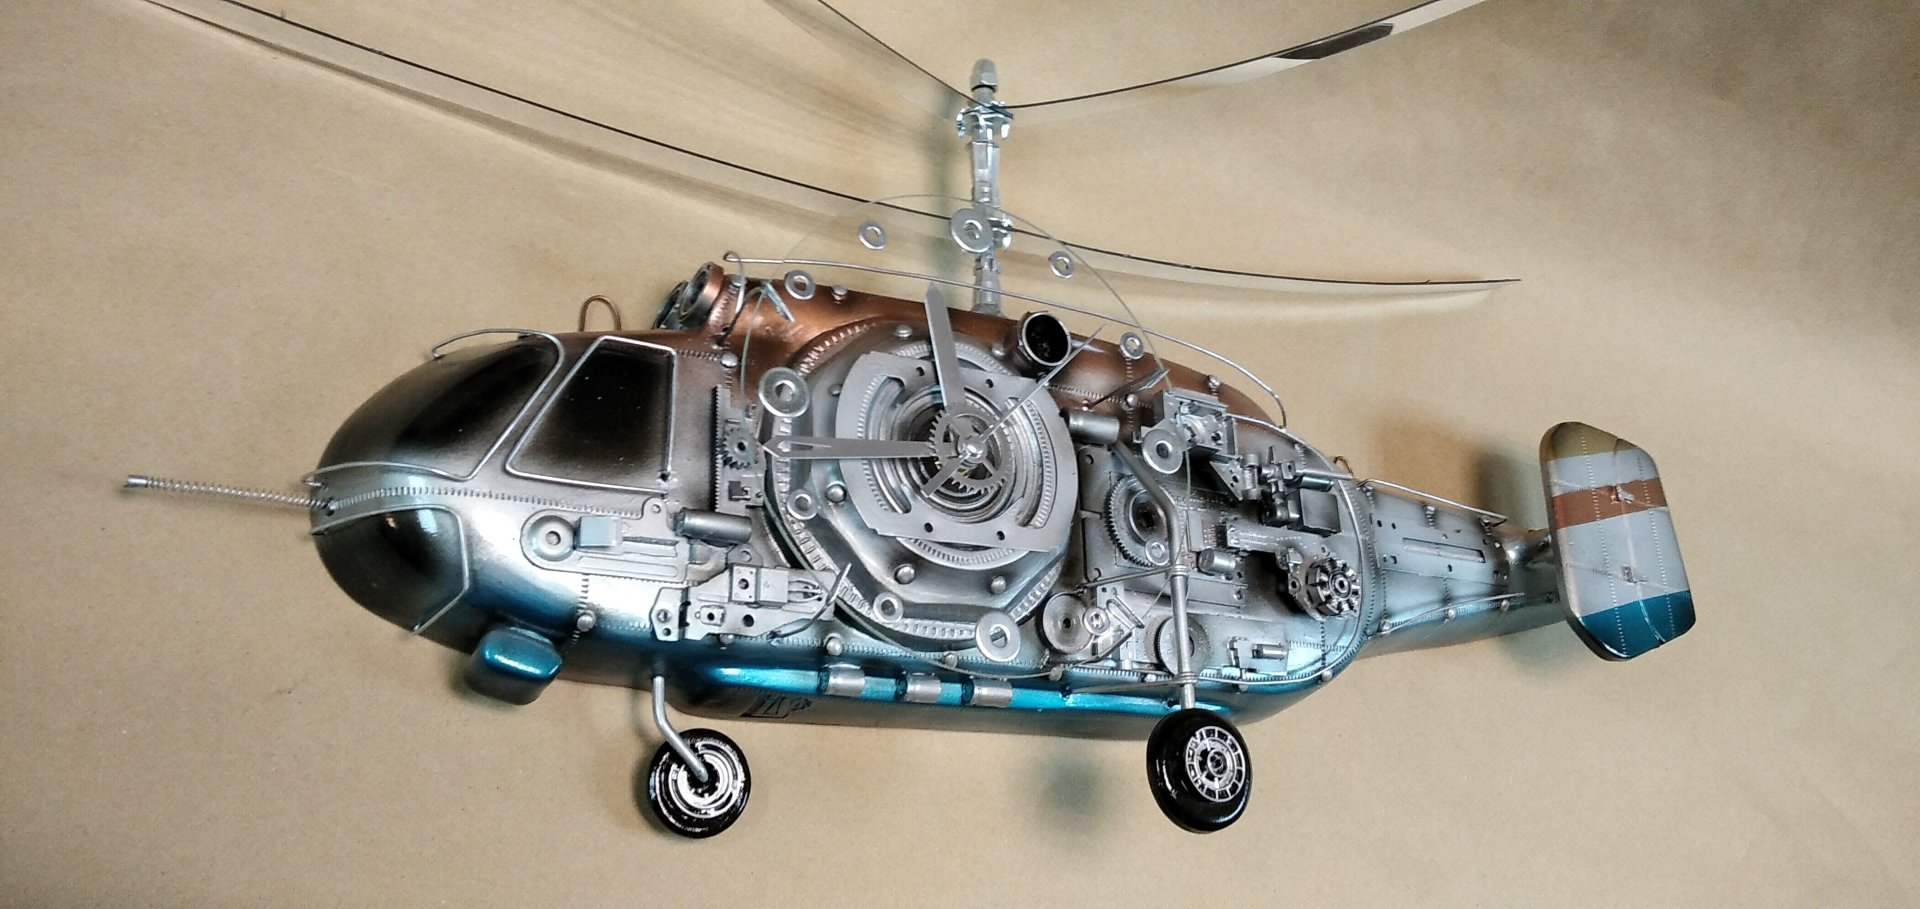 Russian Navy helicopter K-27